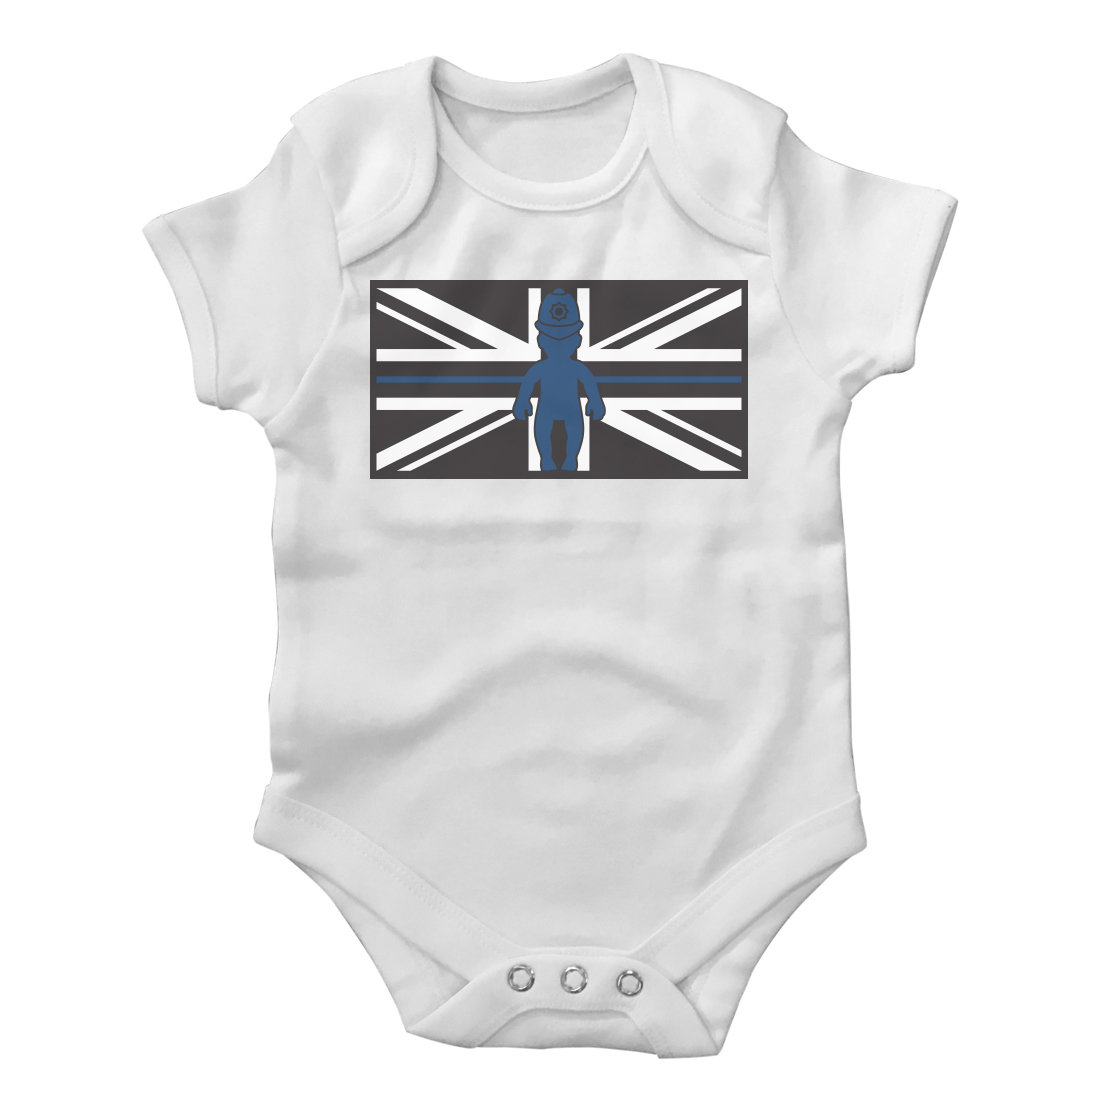 Thin Blue Line Police Baby Grow